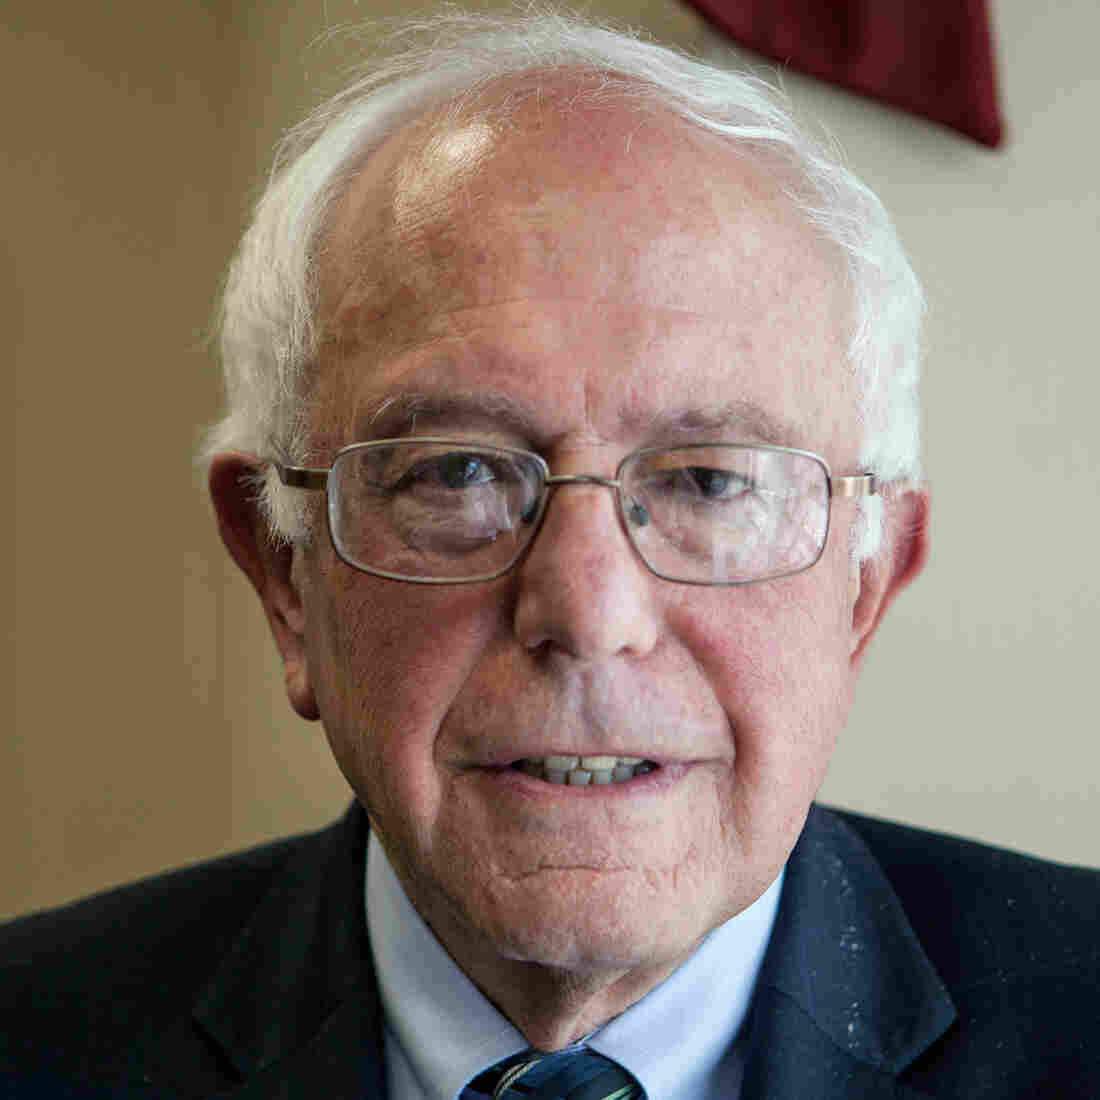 Bernie Sanders: 'Stay Tuned ... We Can Win This Thing'